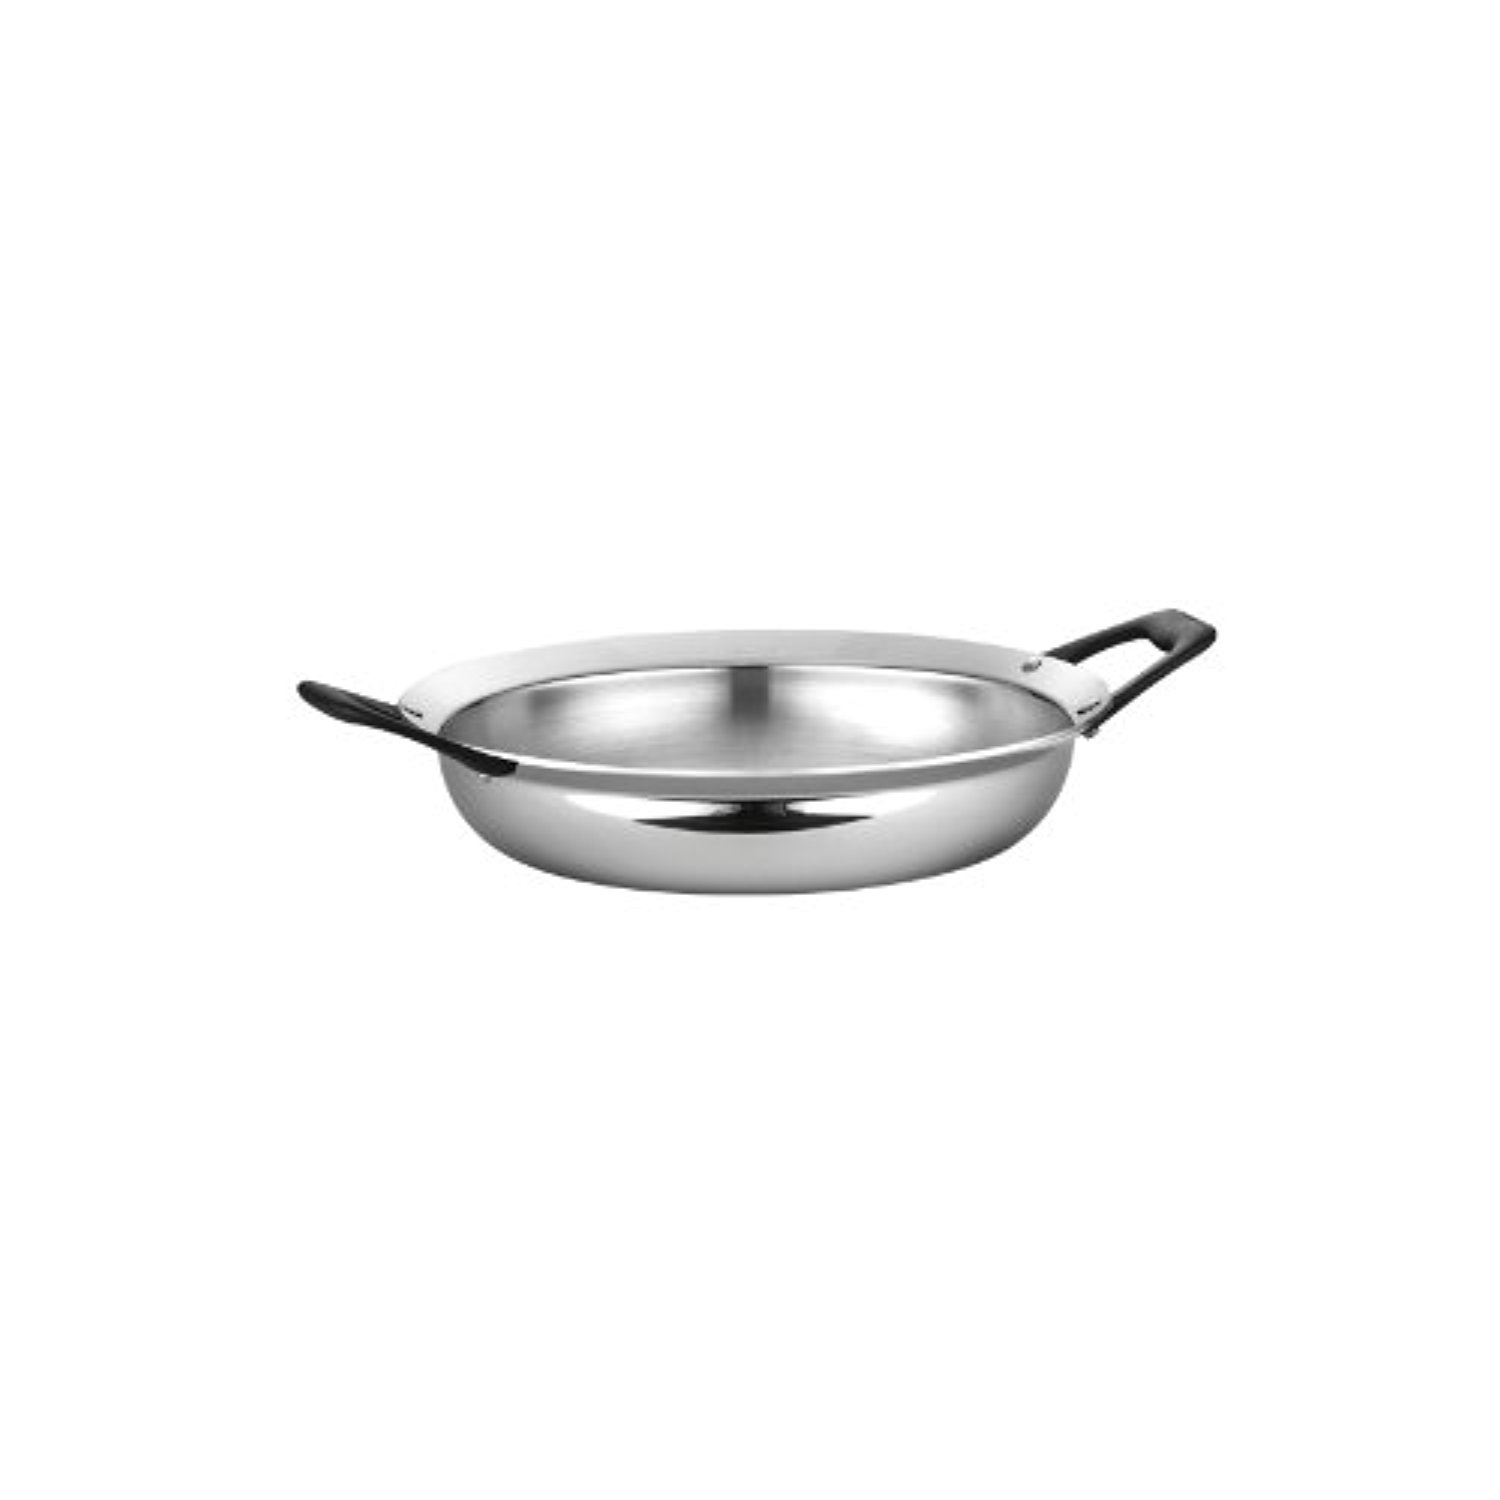 Tramontina Limited Editions Barazzoni 3 Quart Stainless Steel Open Tri-Ply Clad Everyday Pan